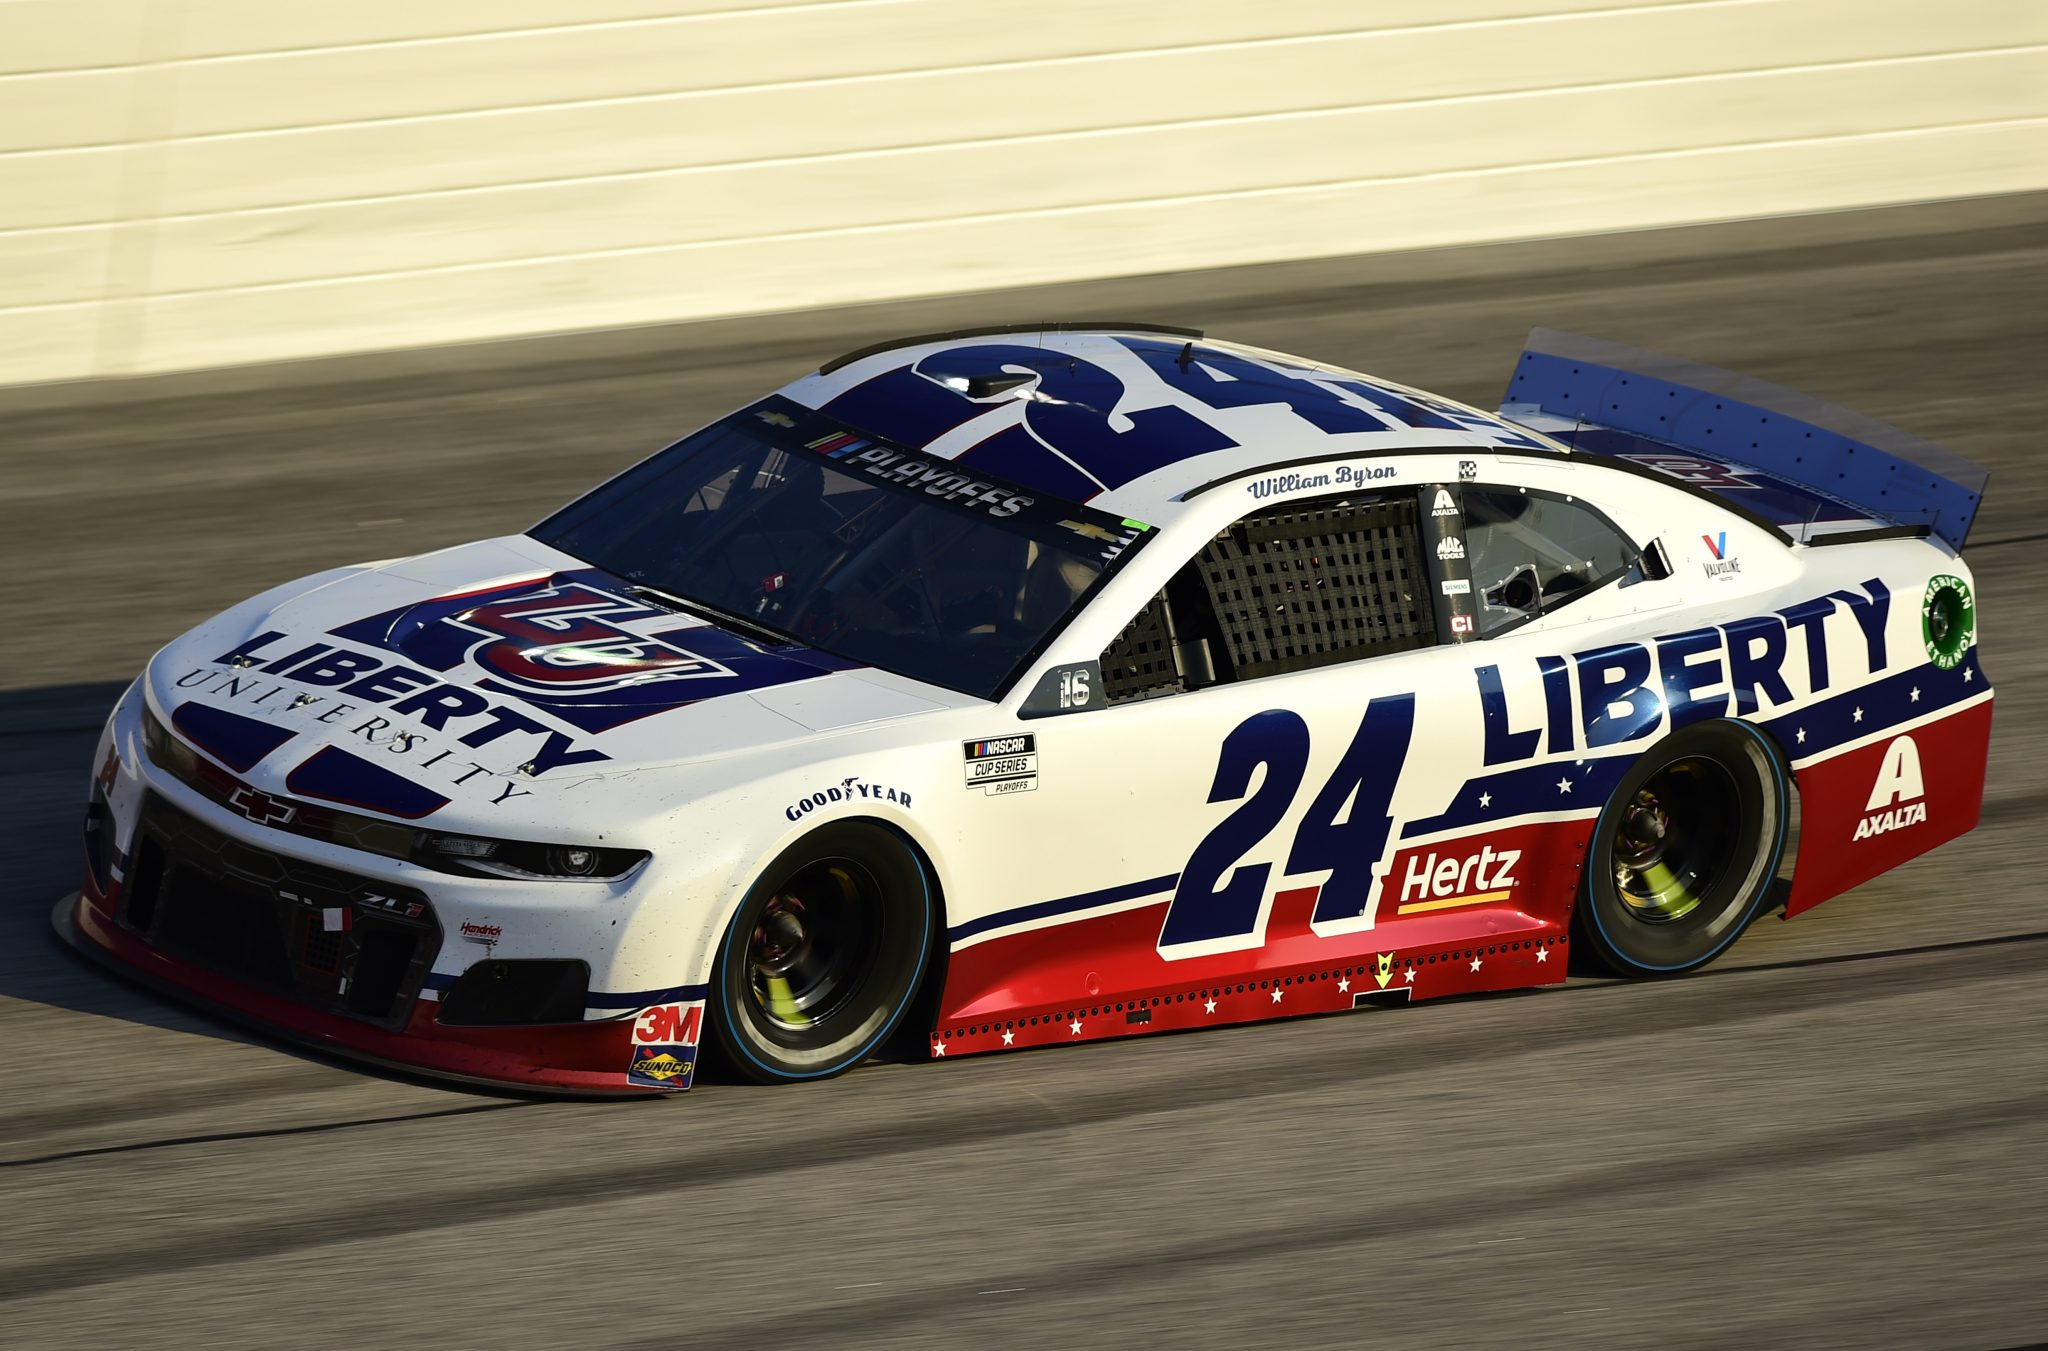 DARLINGTON, SOUTH CAROLINA - SEPTEMBER 06: William Byron, driver of the #24 Liberty Univeristy Throwback Chevrolet, drives during the NASCAR Cup Series Cook Out Southern 500 at Darlington Raceway on September 06, 2020 in Darlington, South Carolina. (Photo by Jared C. Tilton/Getty Images) | Getty Images